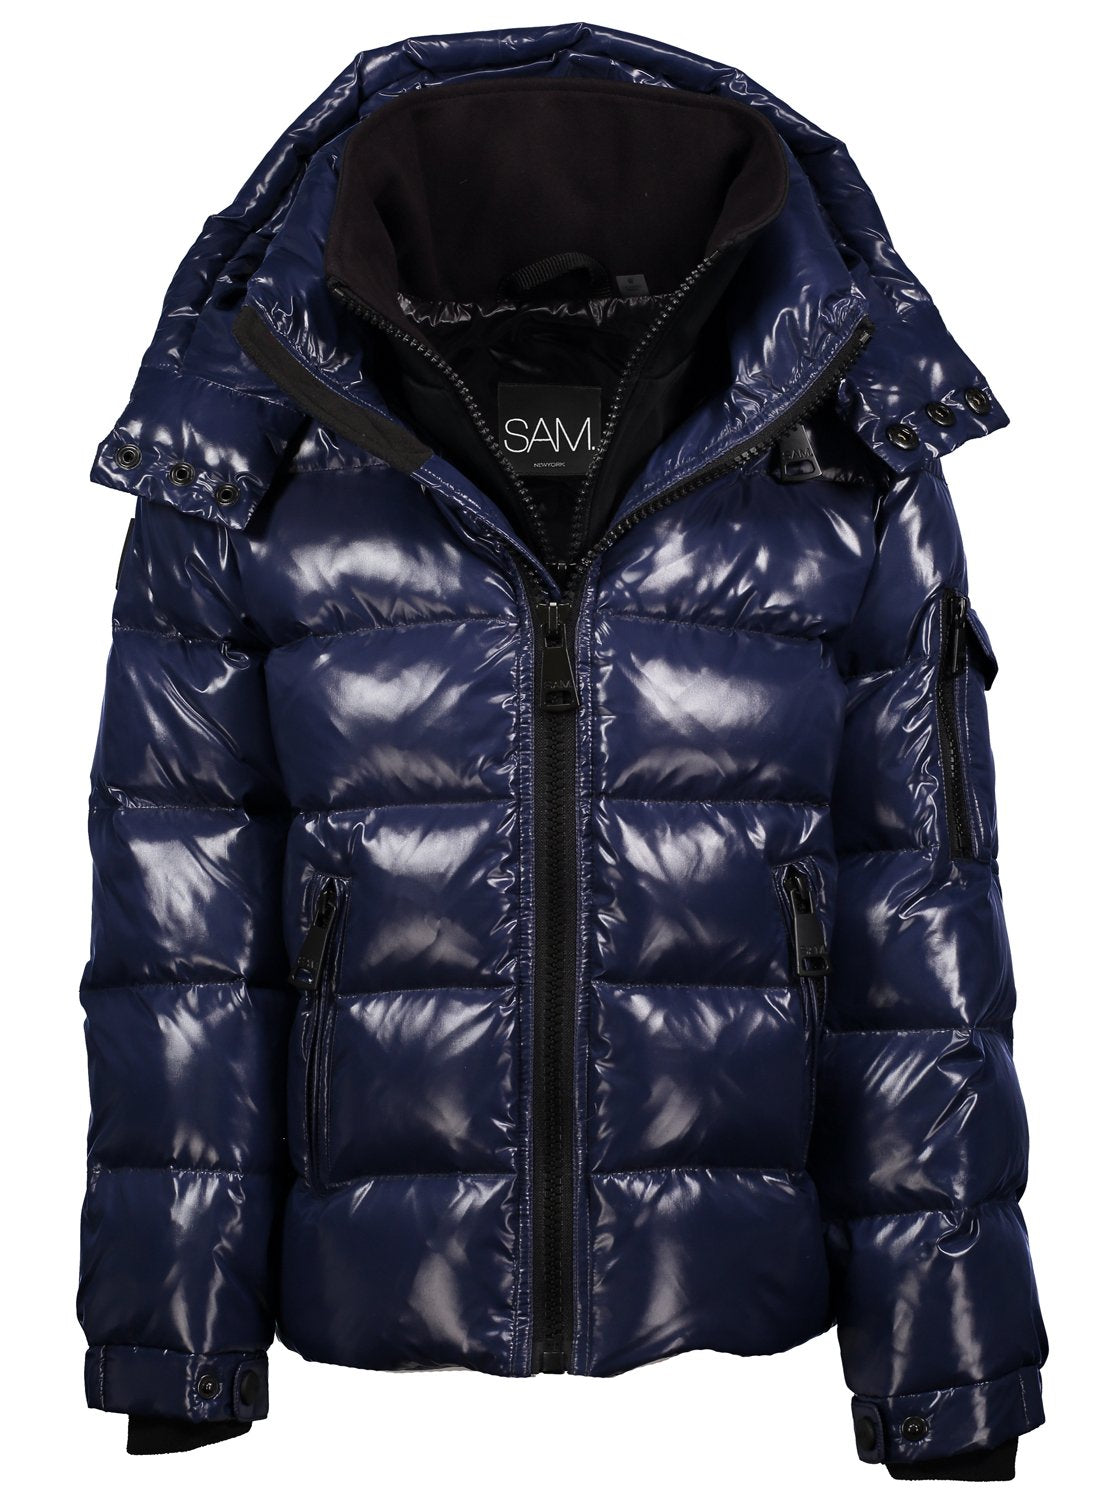 BOYS GLACIER BOYS GLACIER - SAM. New York Sam nyc jacket